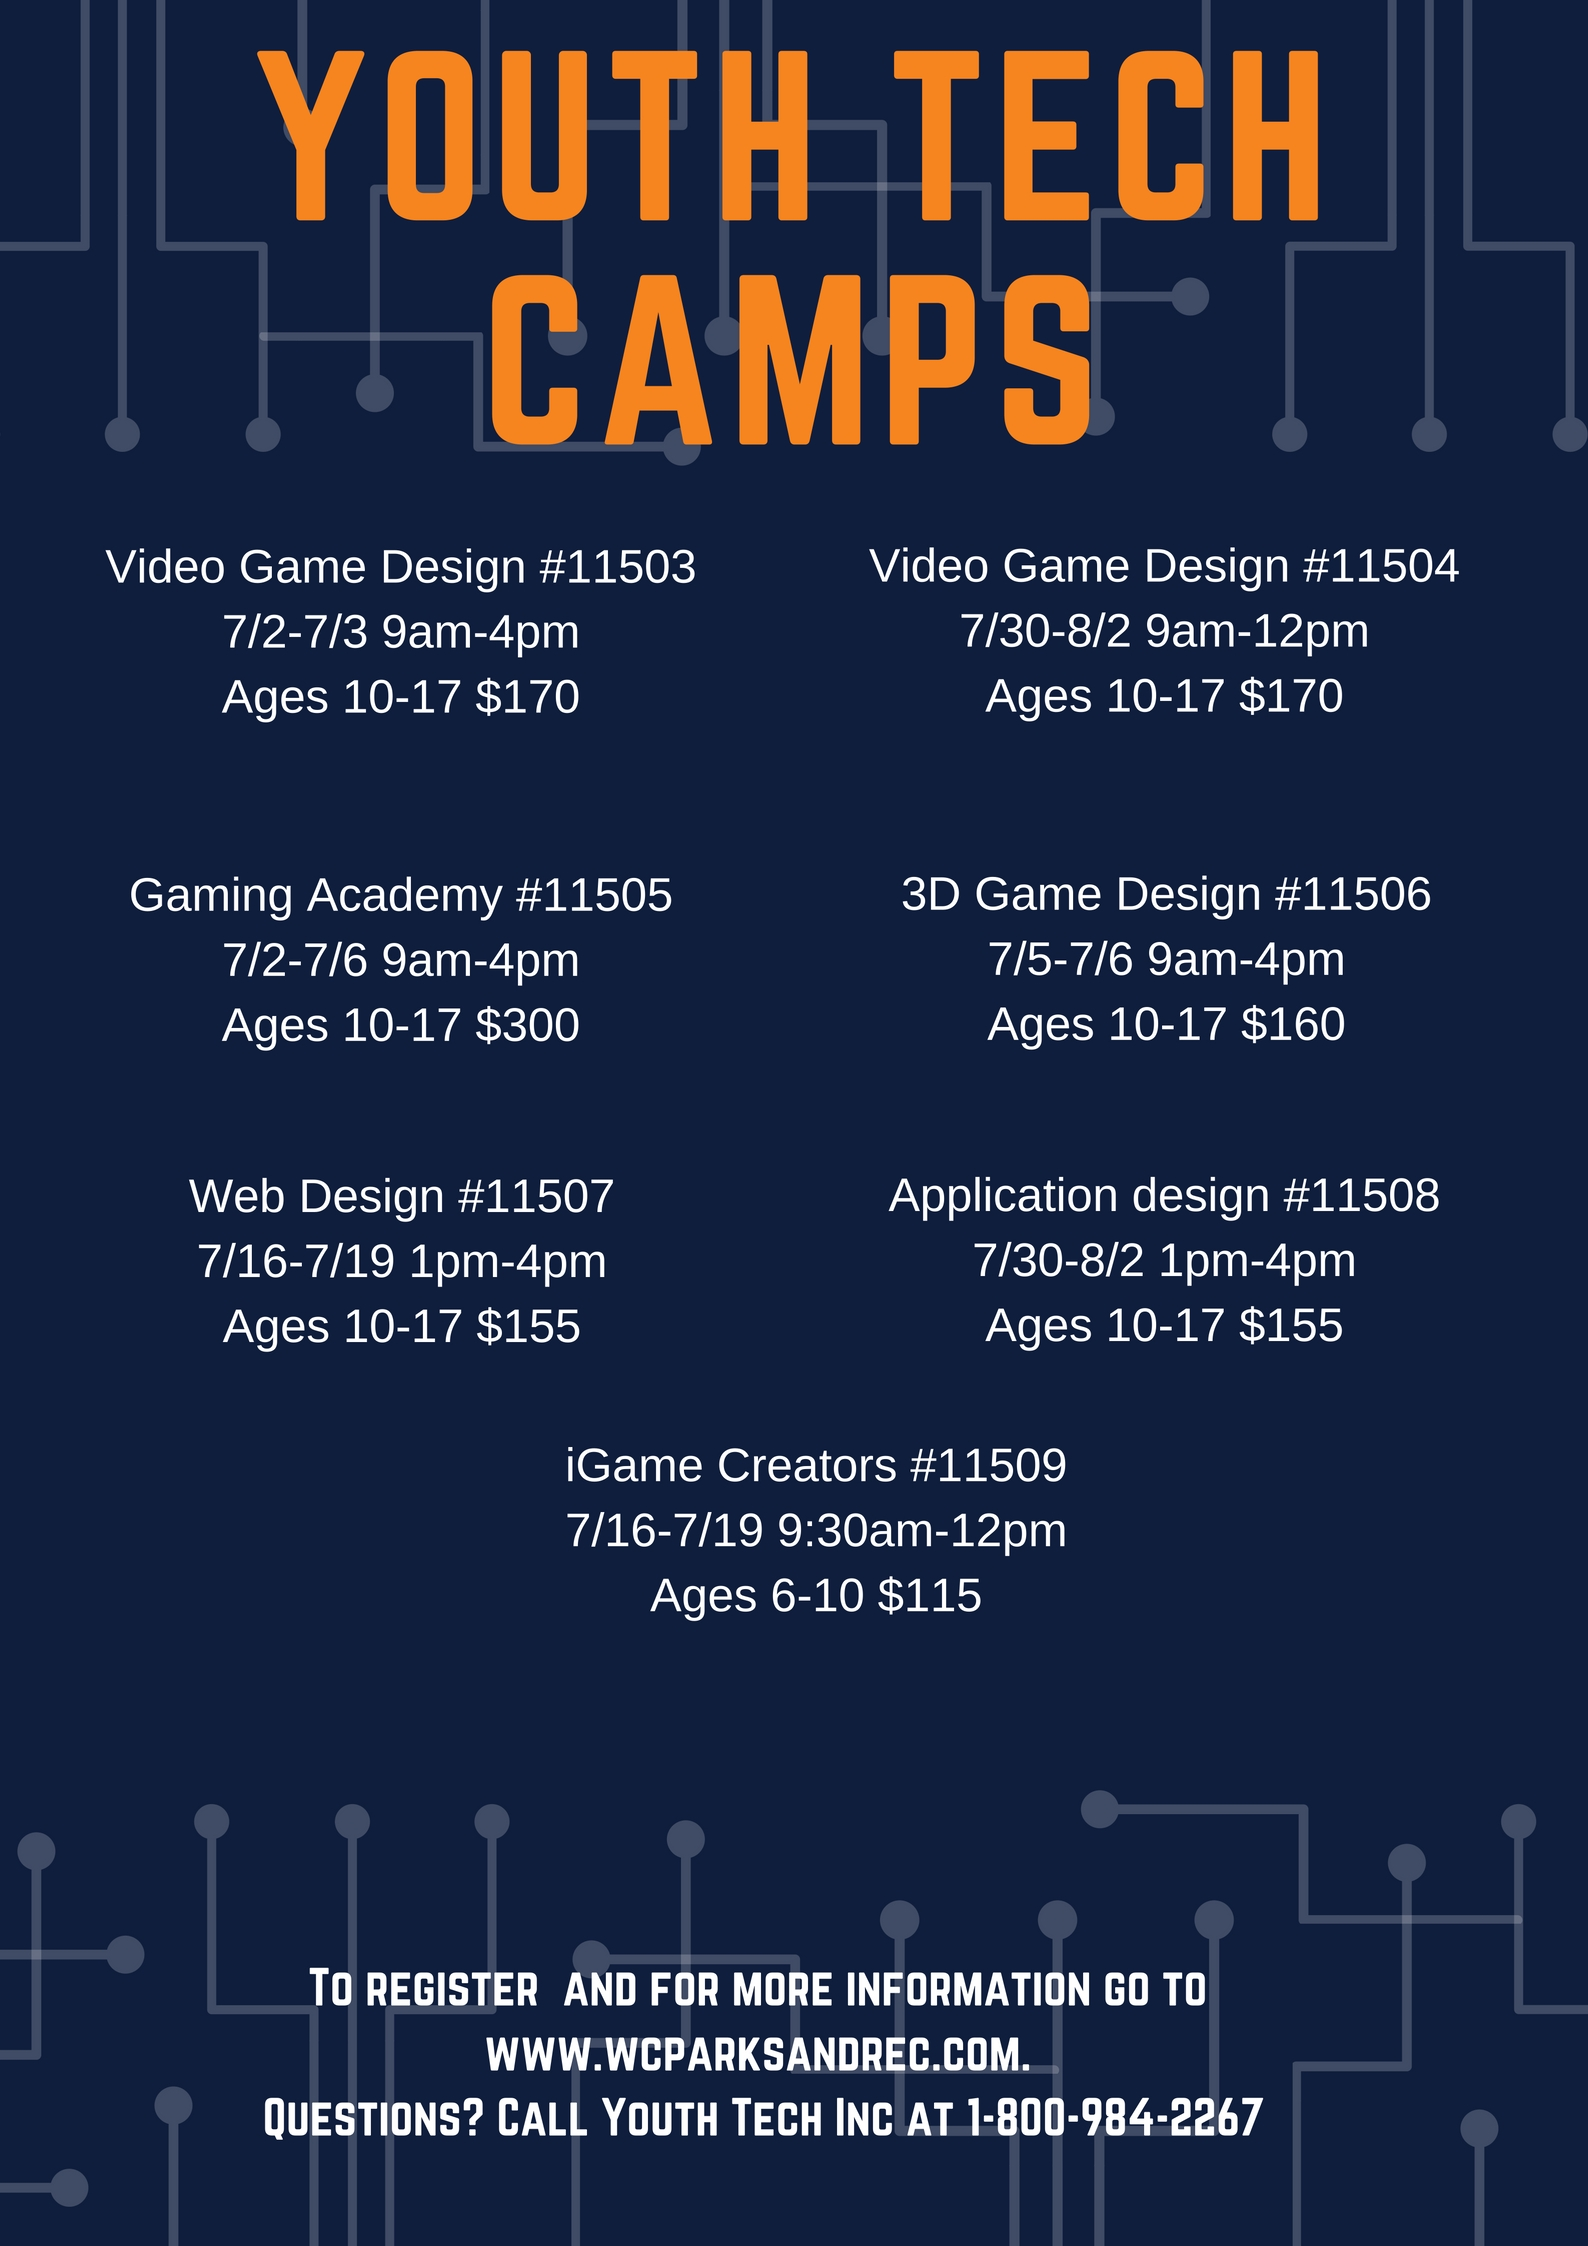 Youth Tech Camps